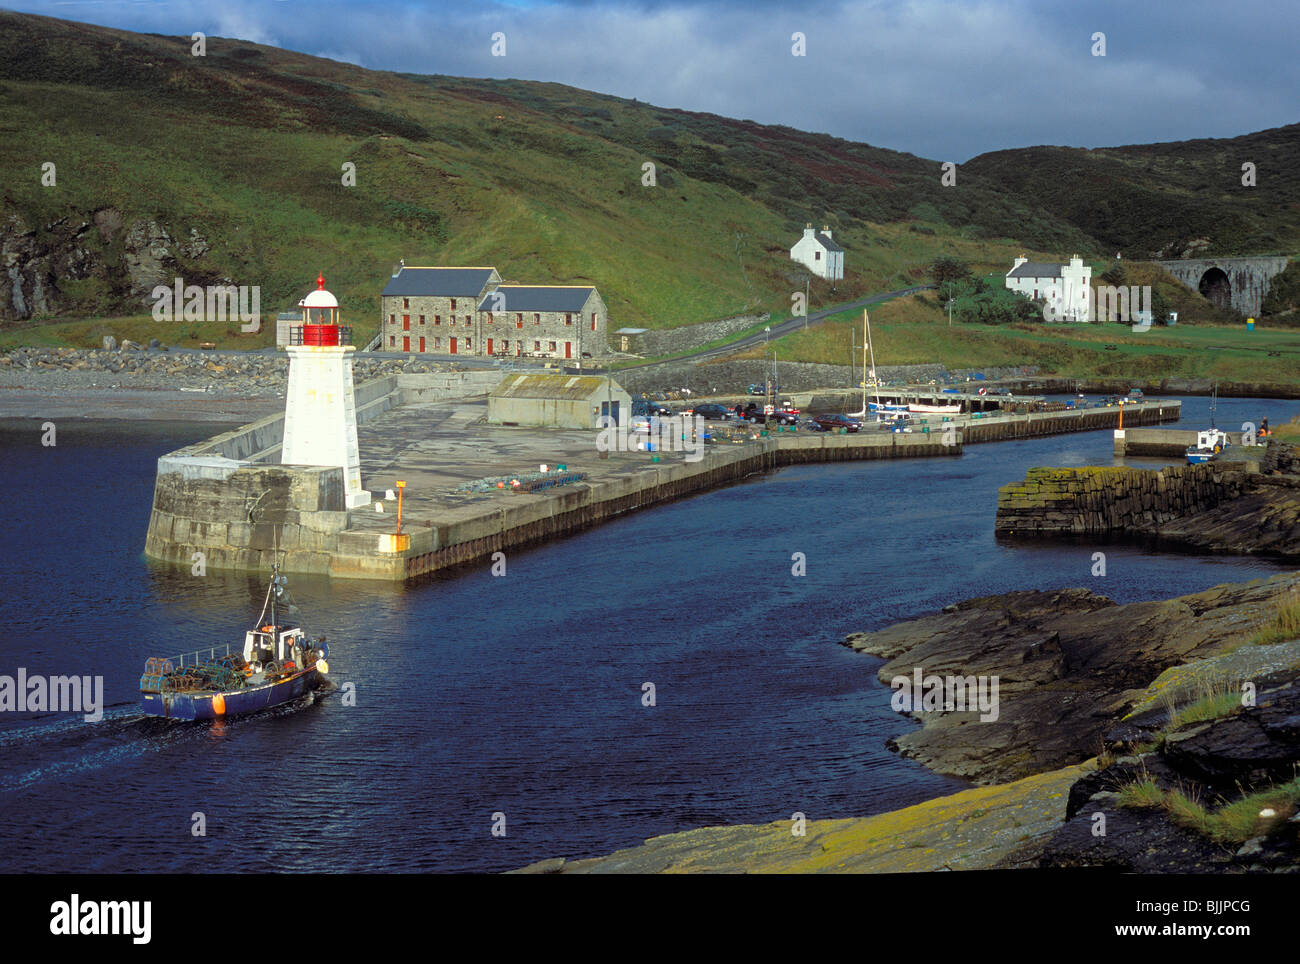 View of Lybster Harbour Caithness with returning fishing vessel - Stock Image